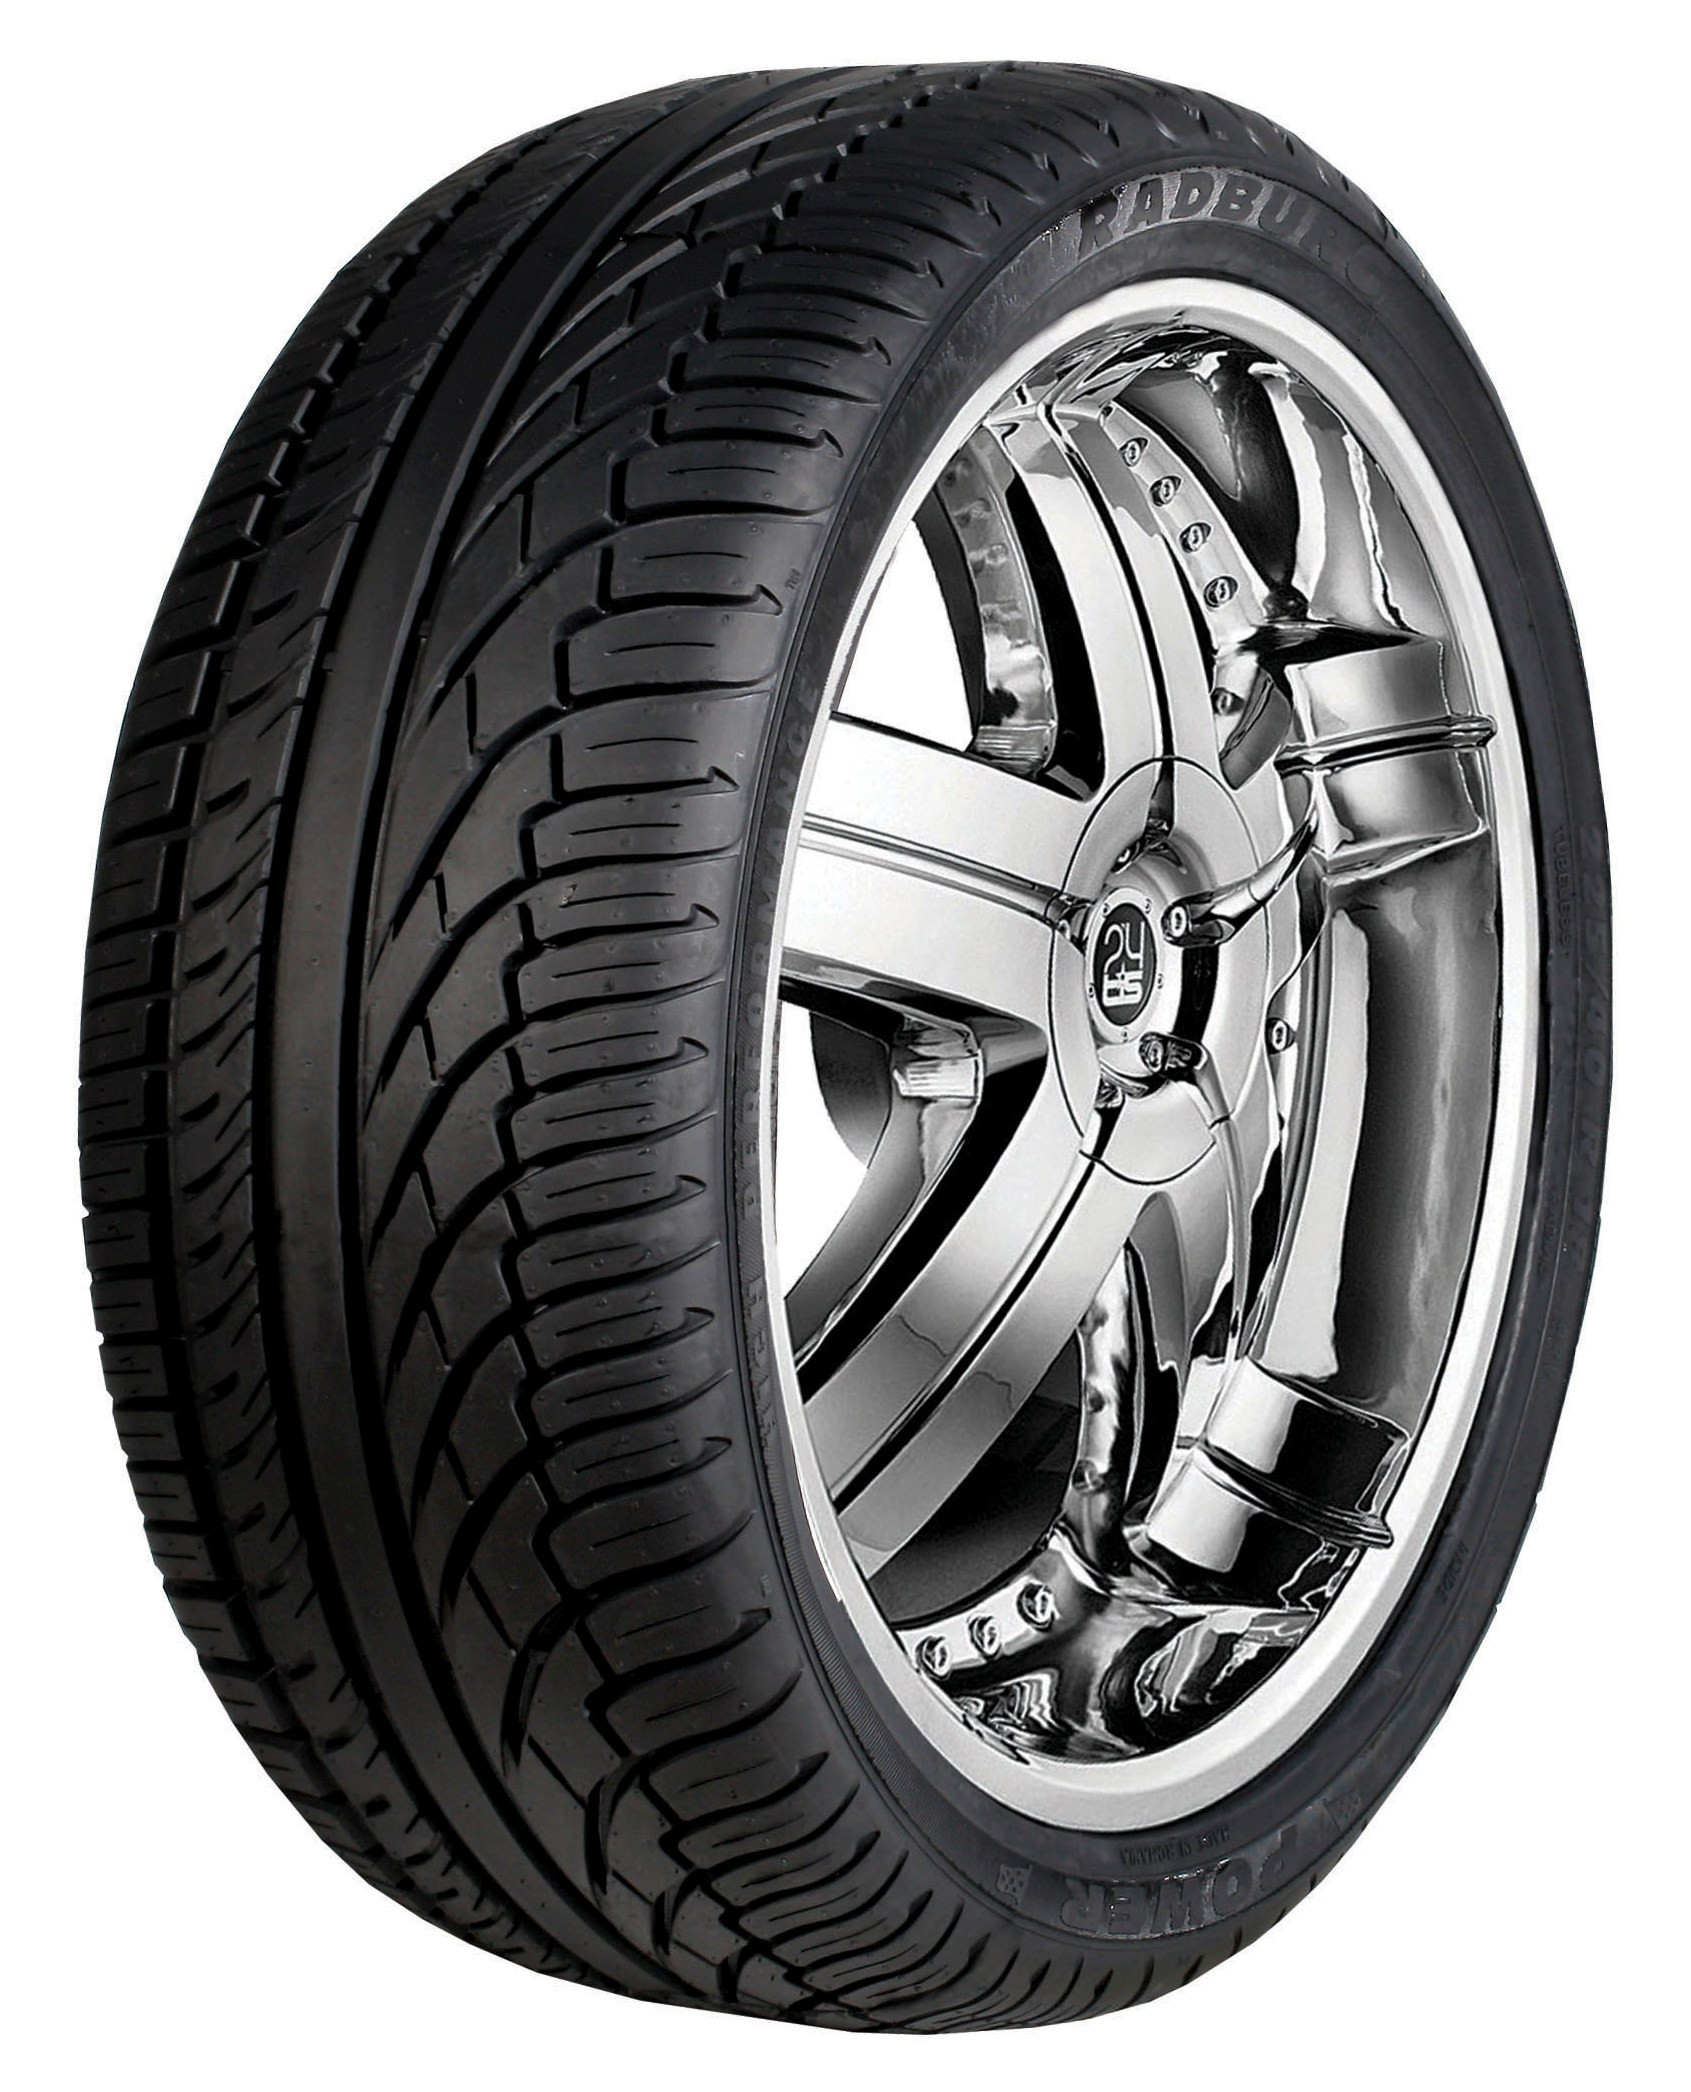 Anvelopa Vara 205/55R16 91V International Tyres Power Reconstruite